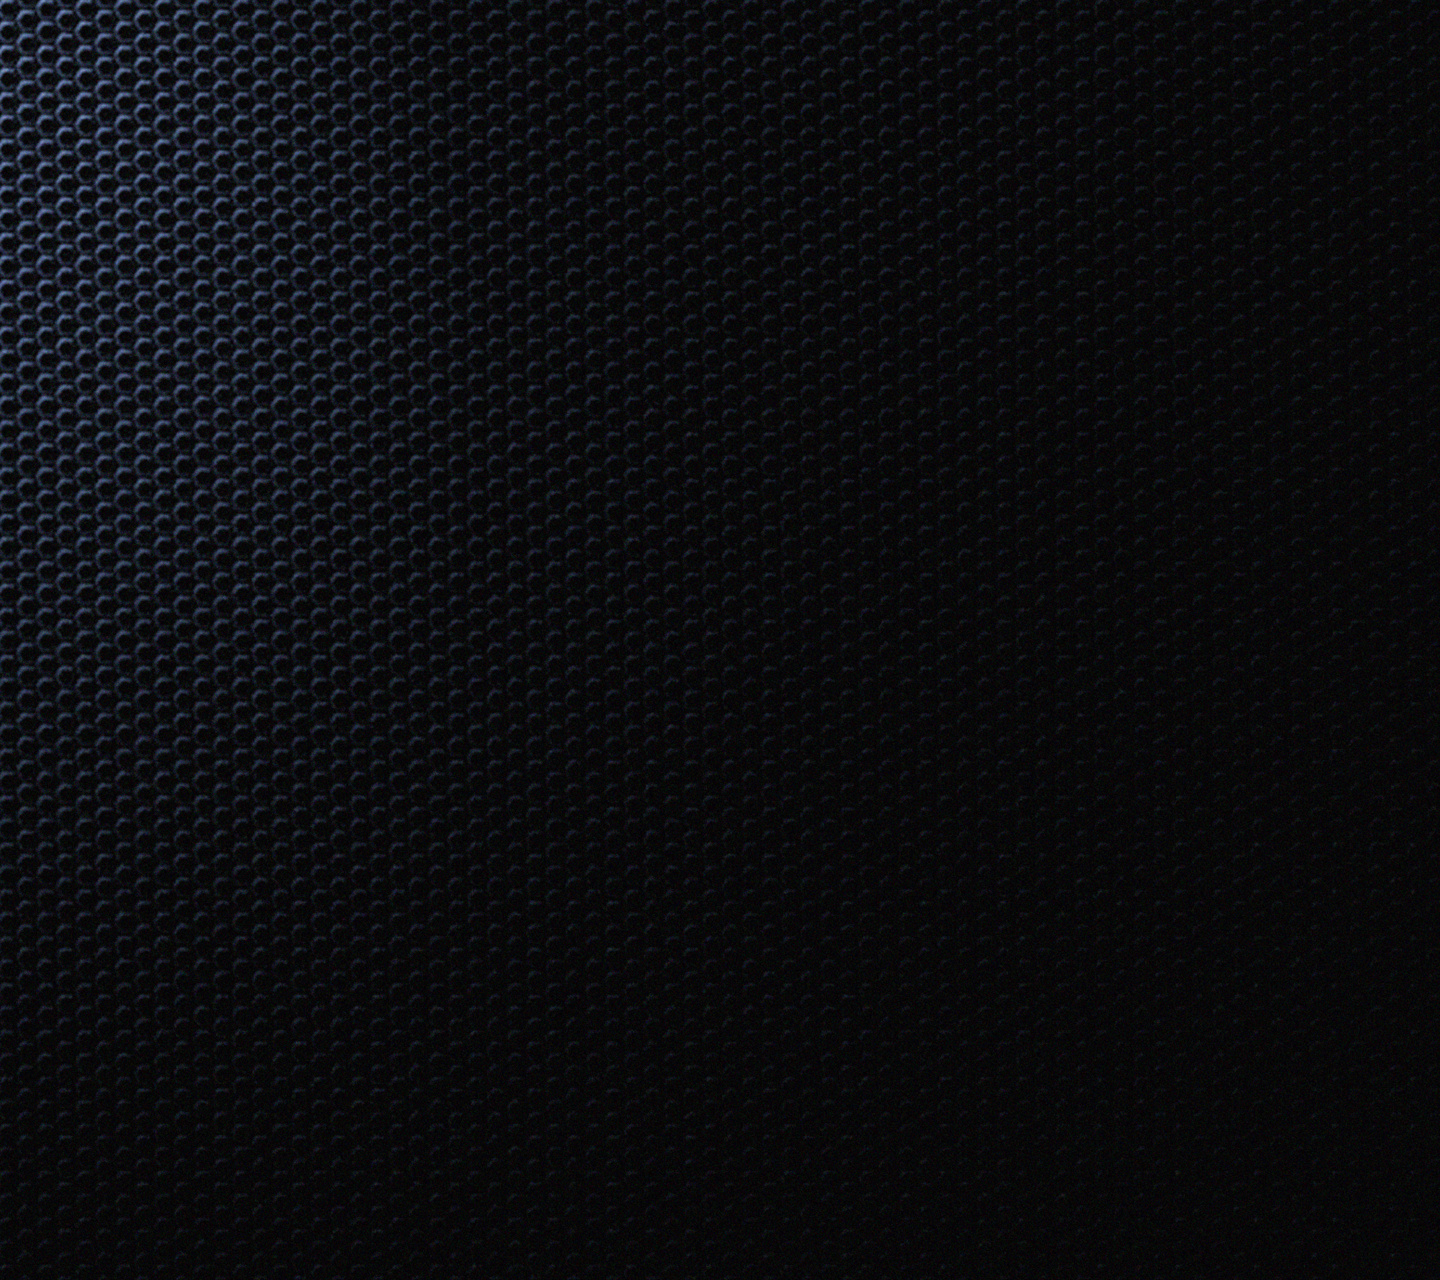 Free Download Plain Black Wallpaper Android 1440x1280 For